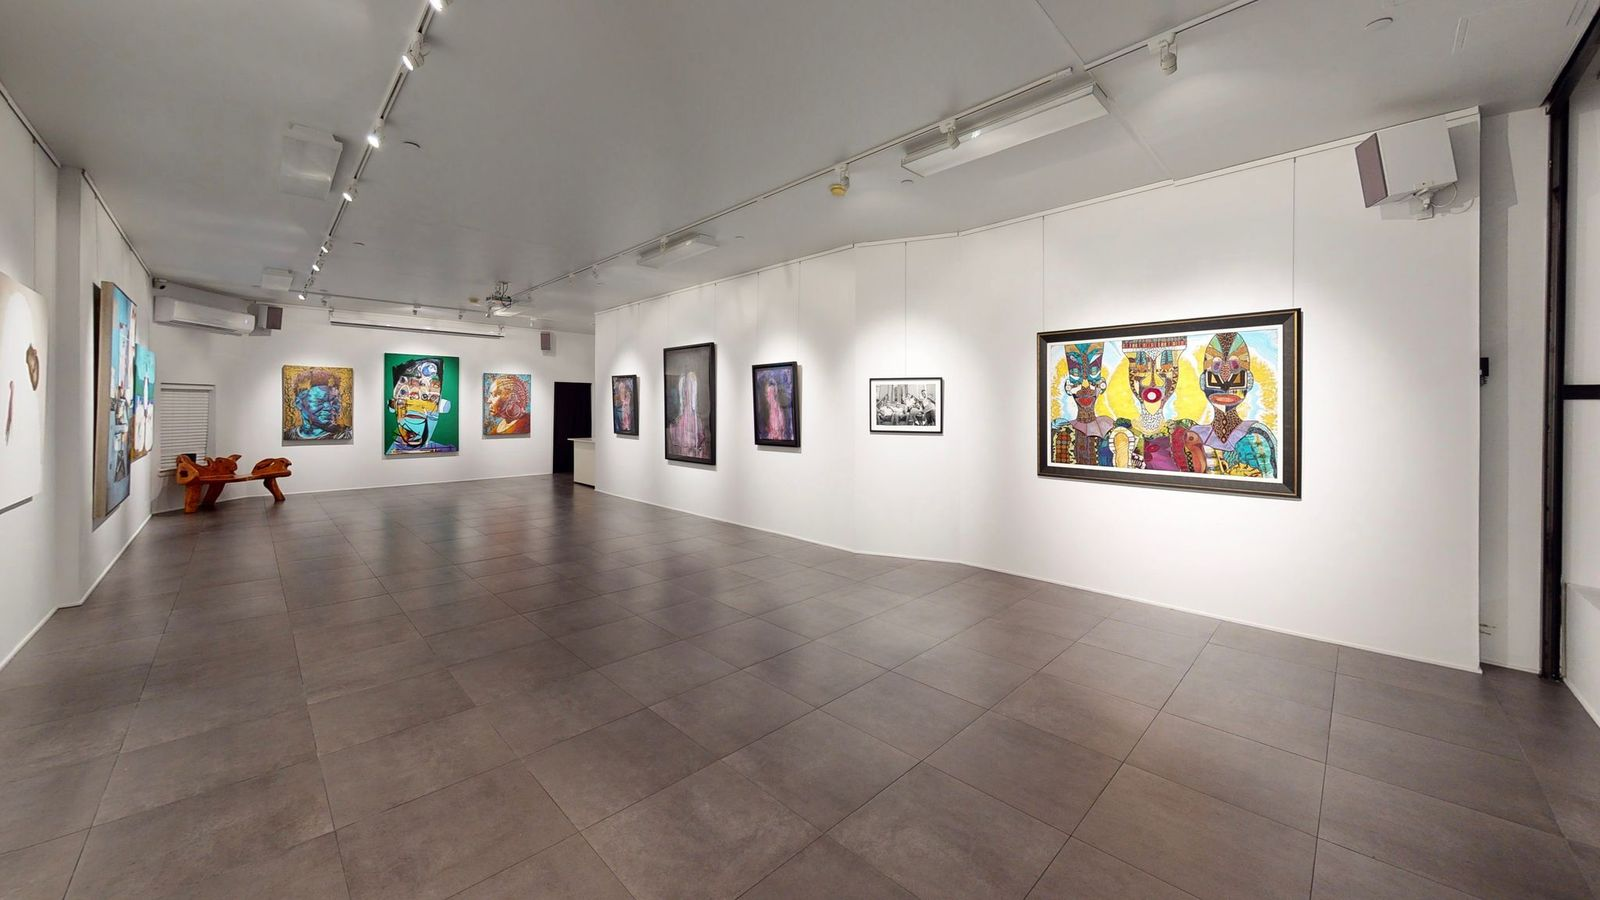 """Installation view of """"Wealth Surrounds Me: God, Gold & Kinfolk"""", 2020. Courtesy of Richard Beavers Gallery"""